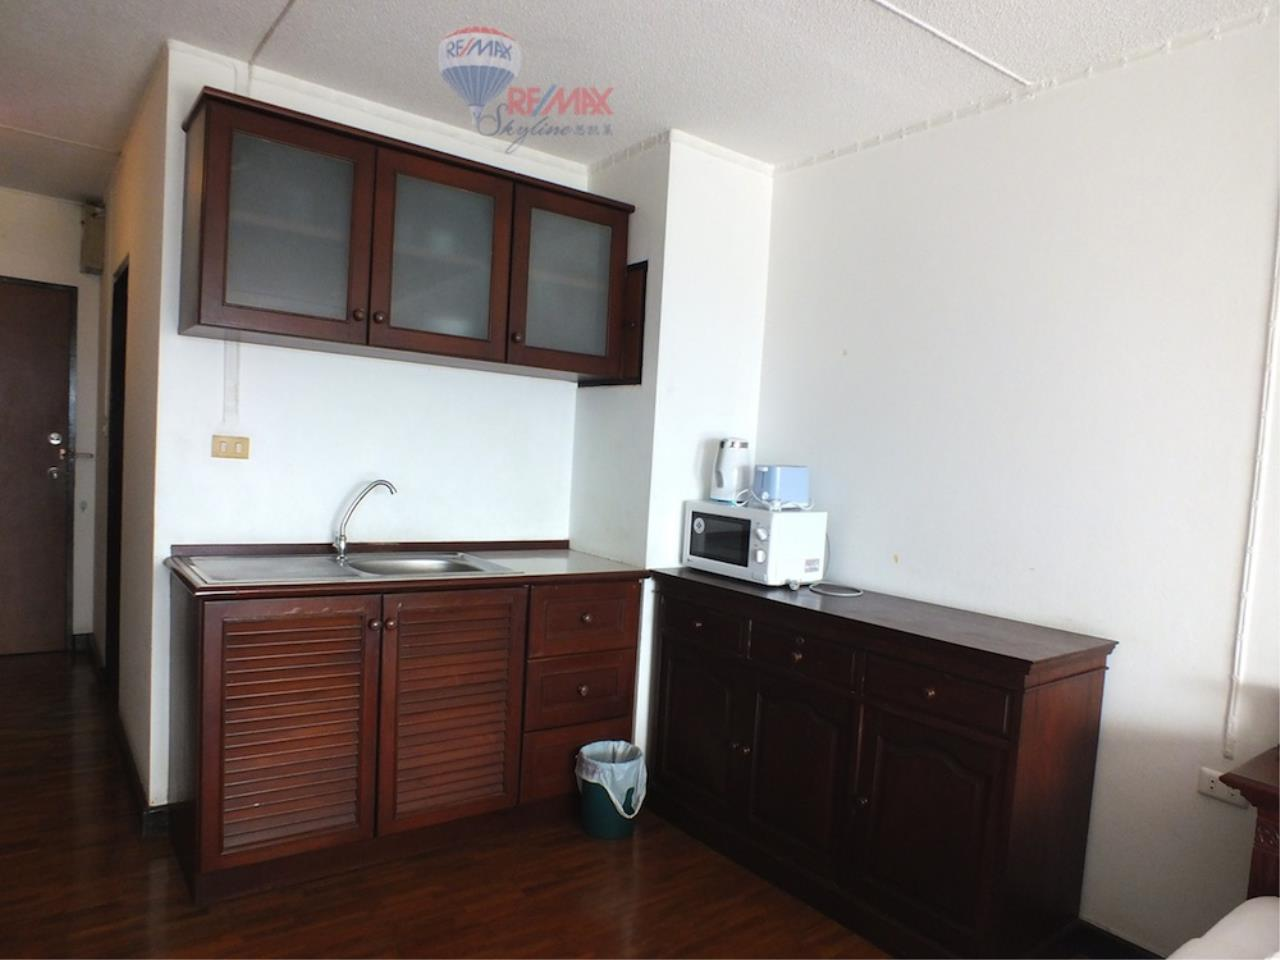 RE/MAX Skyline Agency's Condo for Rent 9